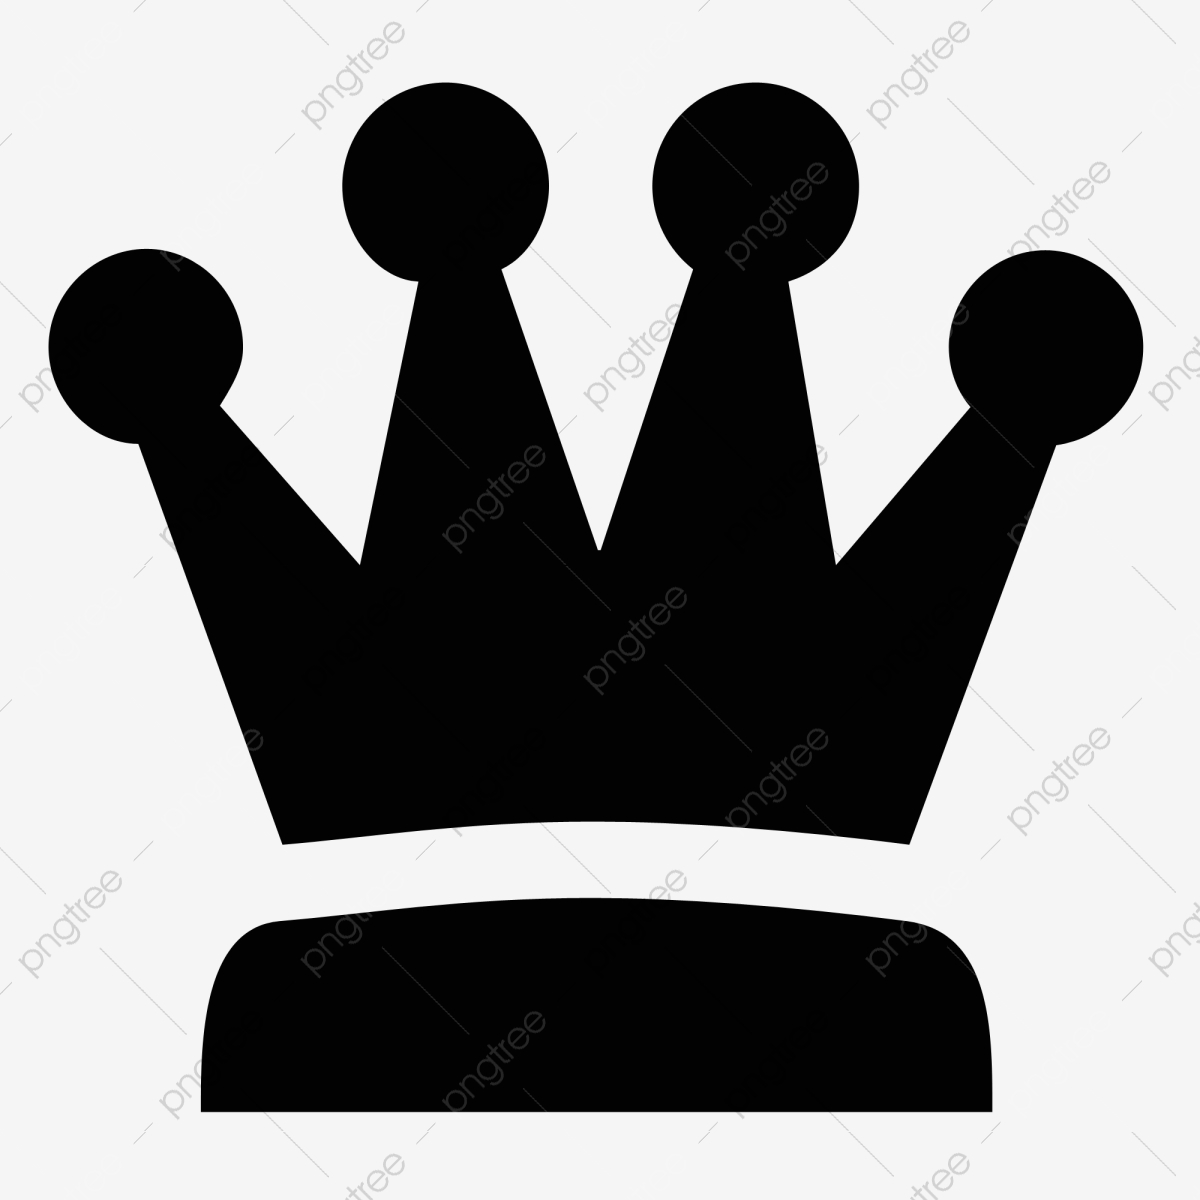 Black Crown Png Images Vector And Psd Files Free Download On Pngtree Browse our cartoon crown images, graphics, and designs from +79.322 free vectors graphics. https pngtree com freepng simple black crown material 4392310 html